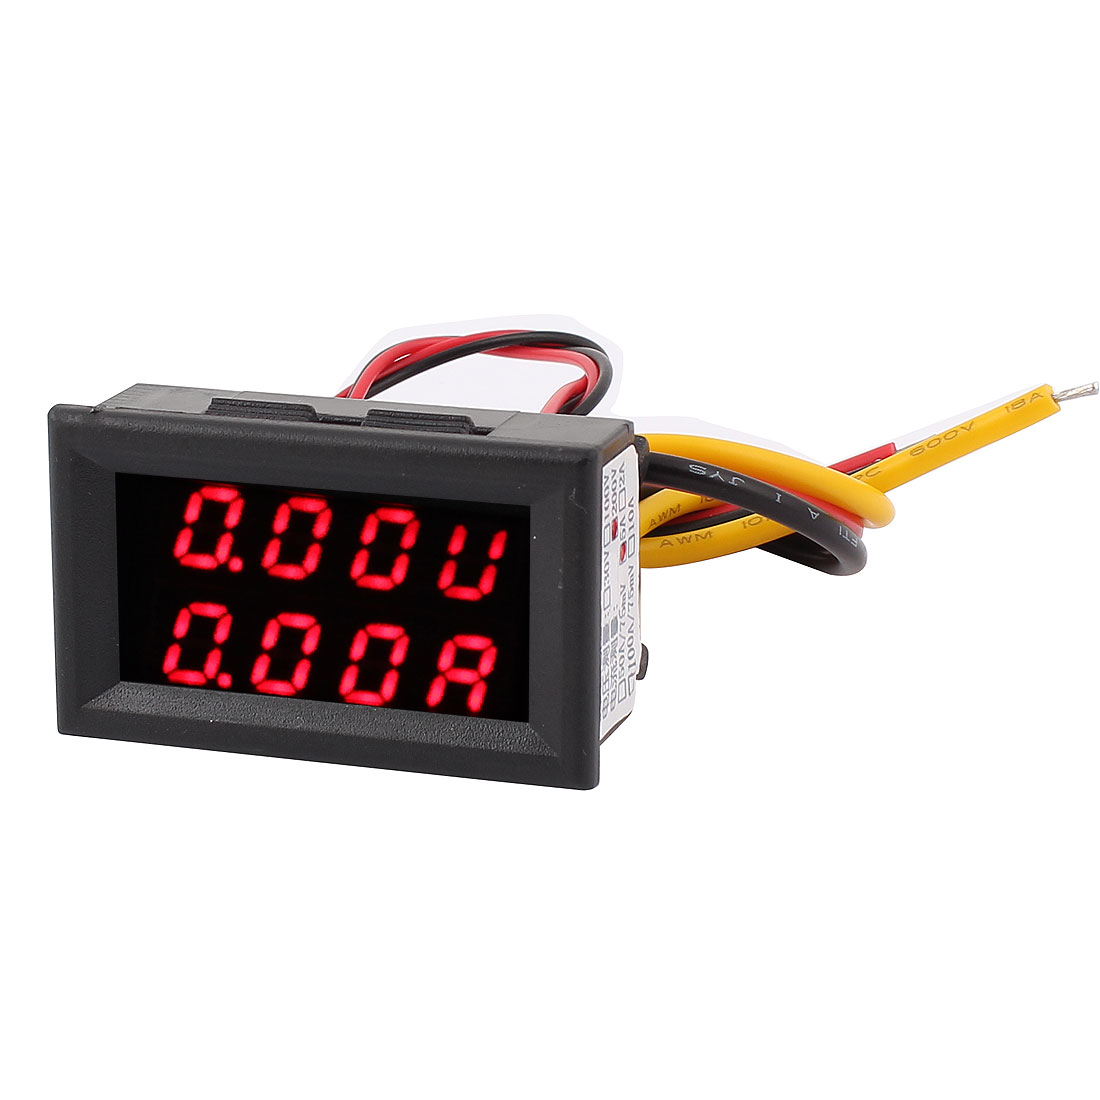 DC 0-200V 0-5A Dual LED Digital Mobile Battery Tester Monitor Voltage Current Meter